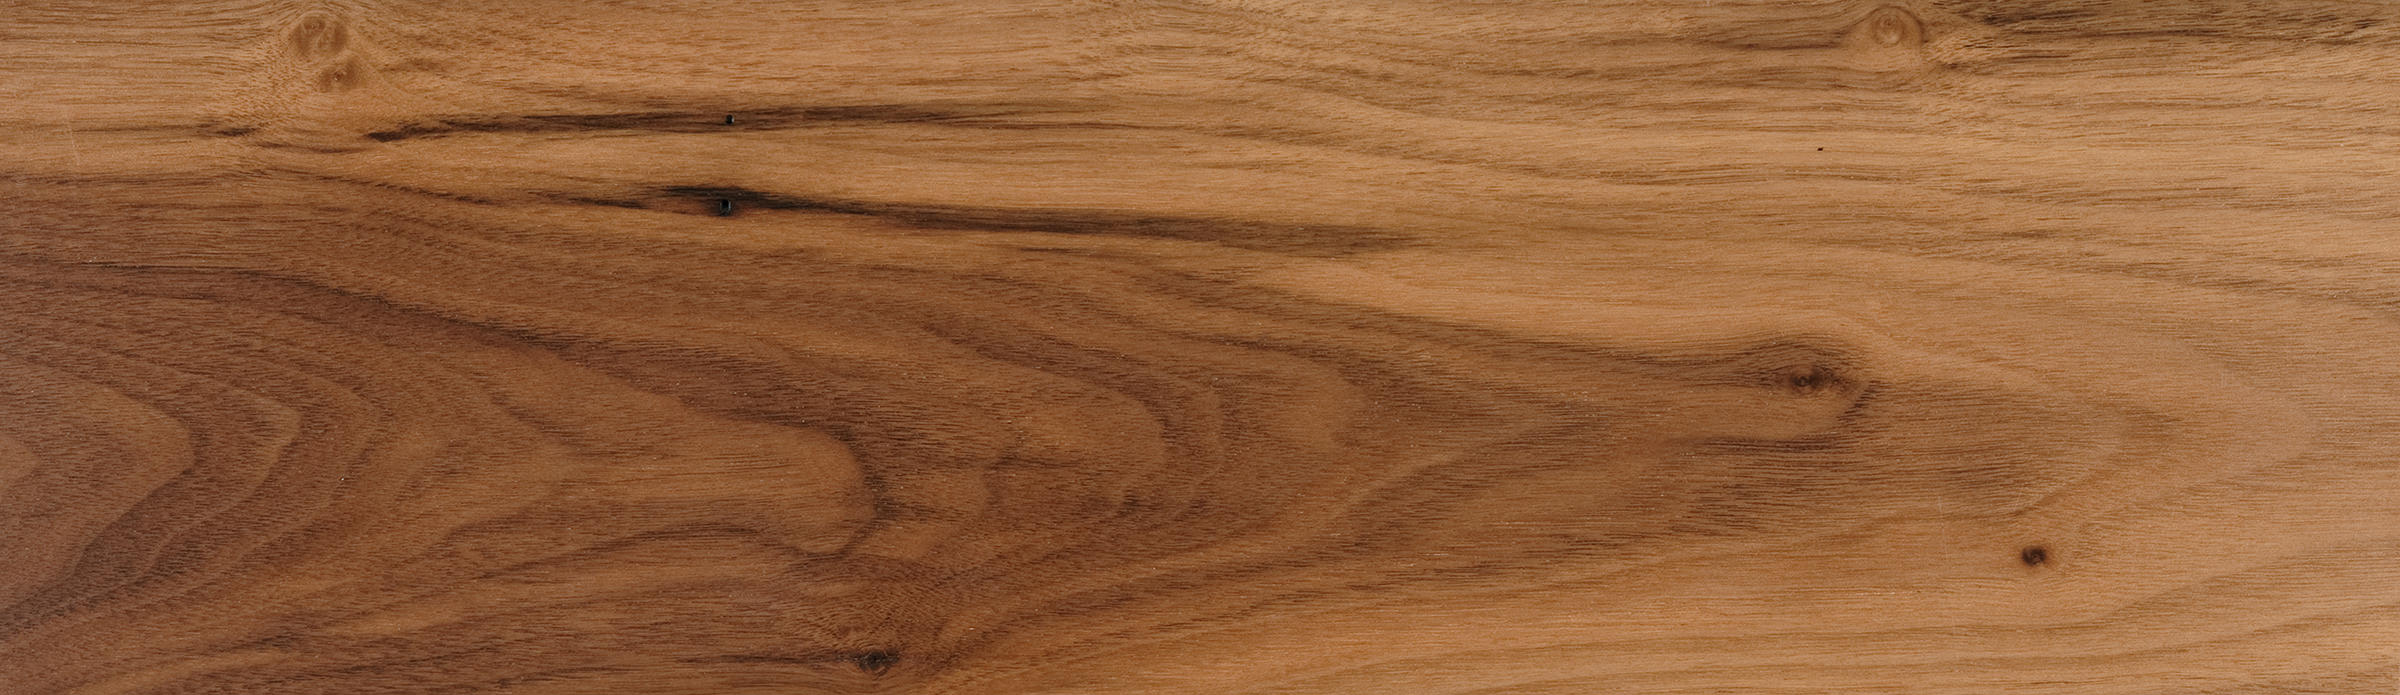 types of timber for furniture. Walnut Types Of Timber For Furniture